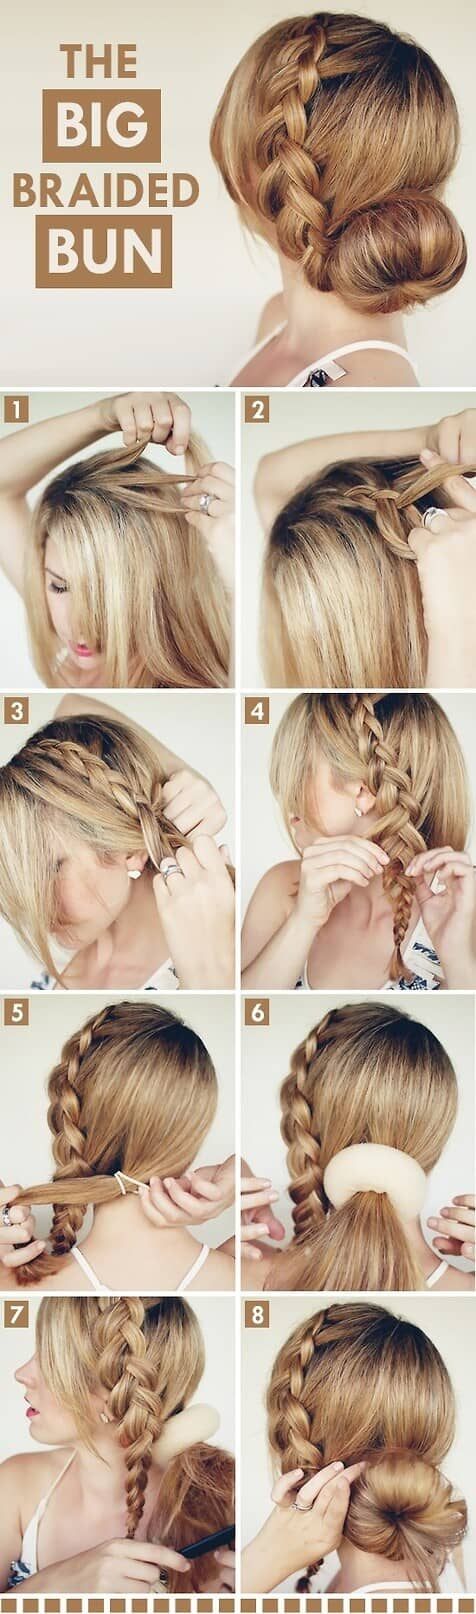 Best Adorable Bun Hairstyles 2019-Inspirations That 13